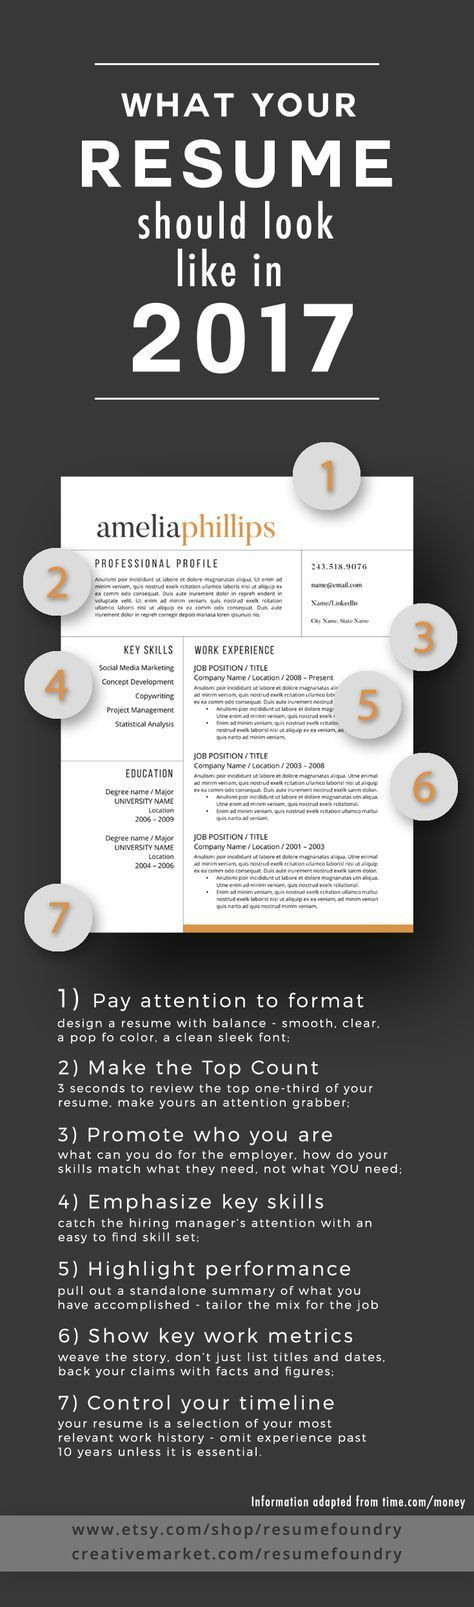 359 best job search info images on pinterest resume tips resume